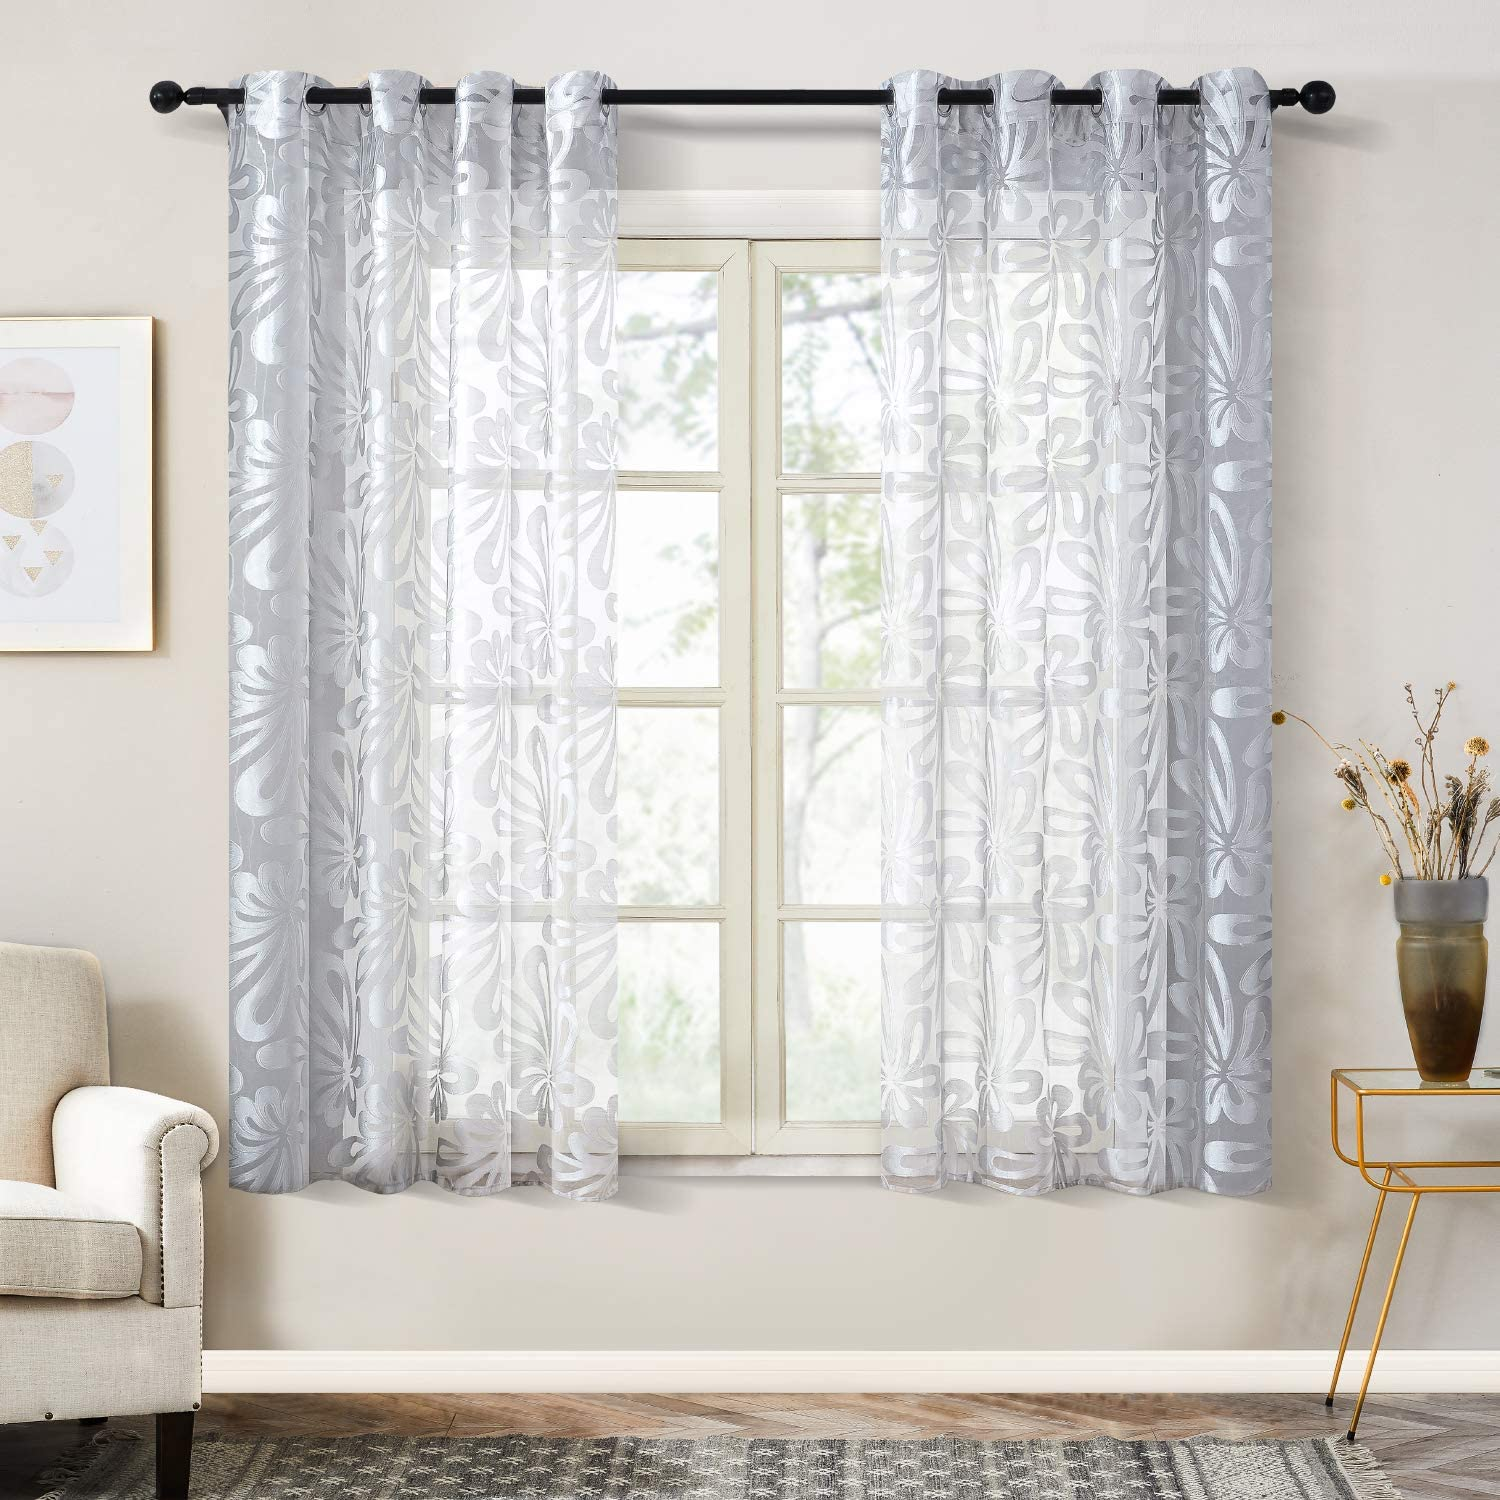 Top Finel Floral Sheer Curtains 63 Inch Length for Living Room Bedroom Grommet Voile Window Curtains, 2 Panels, Grey